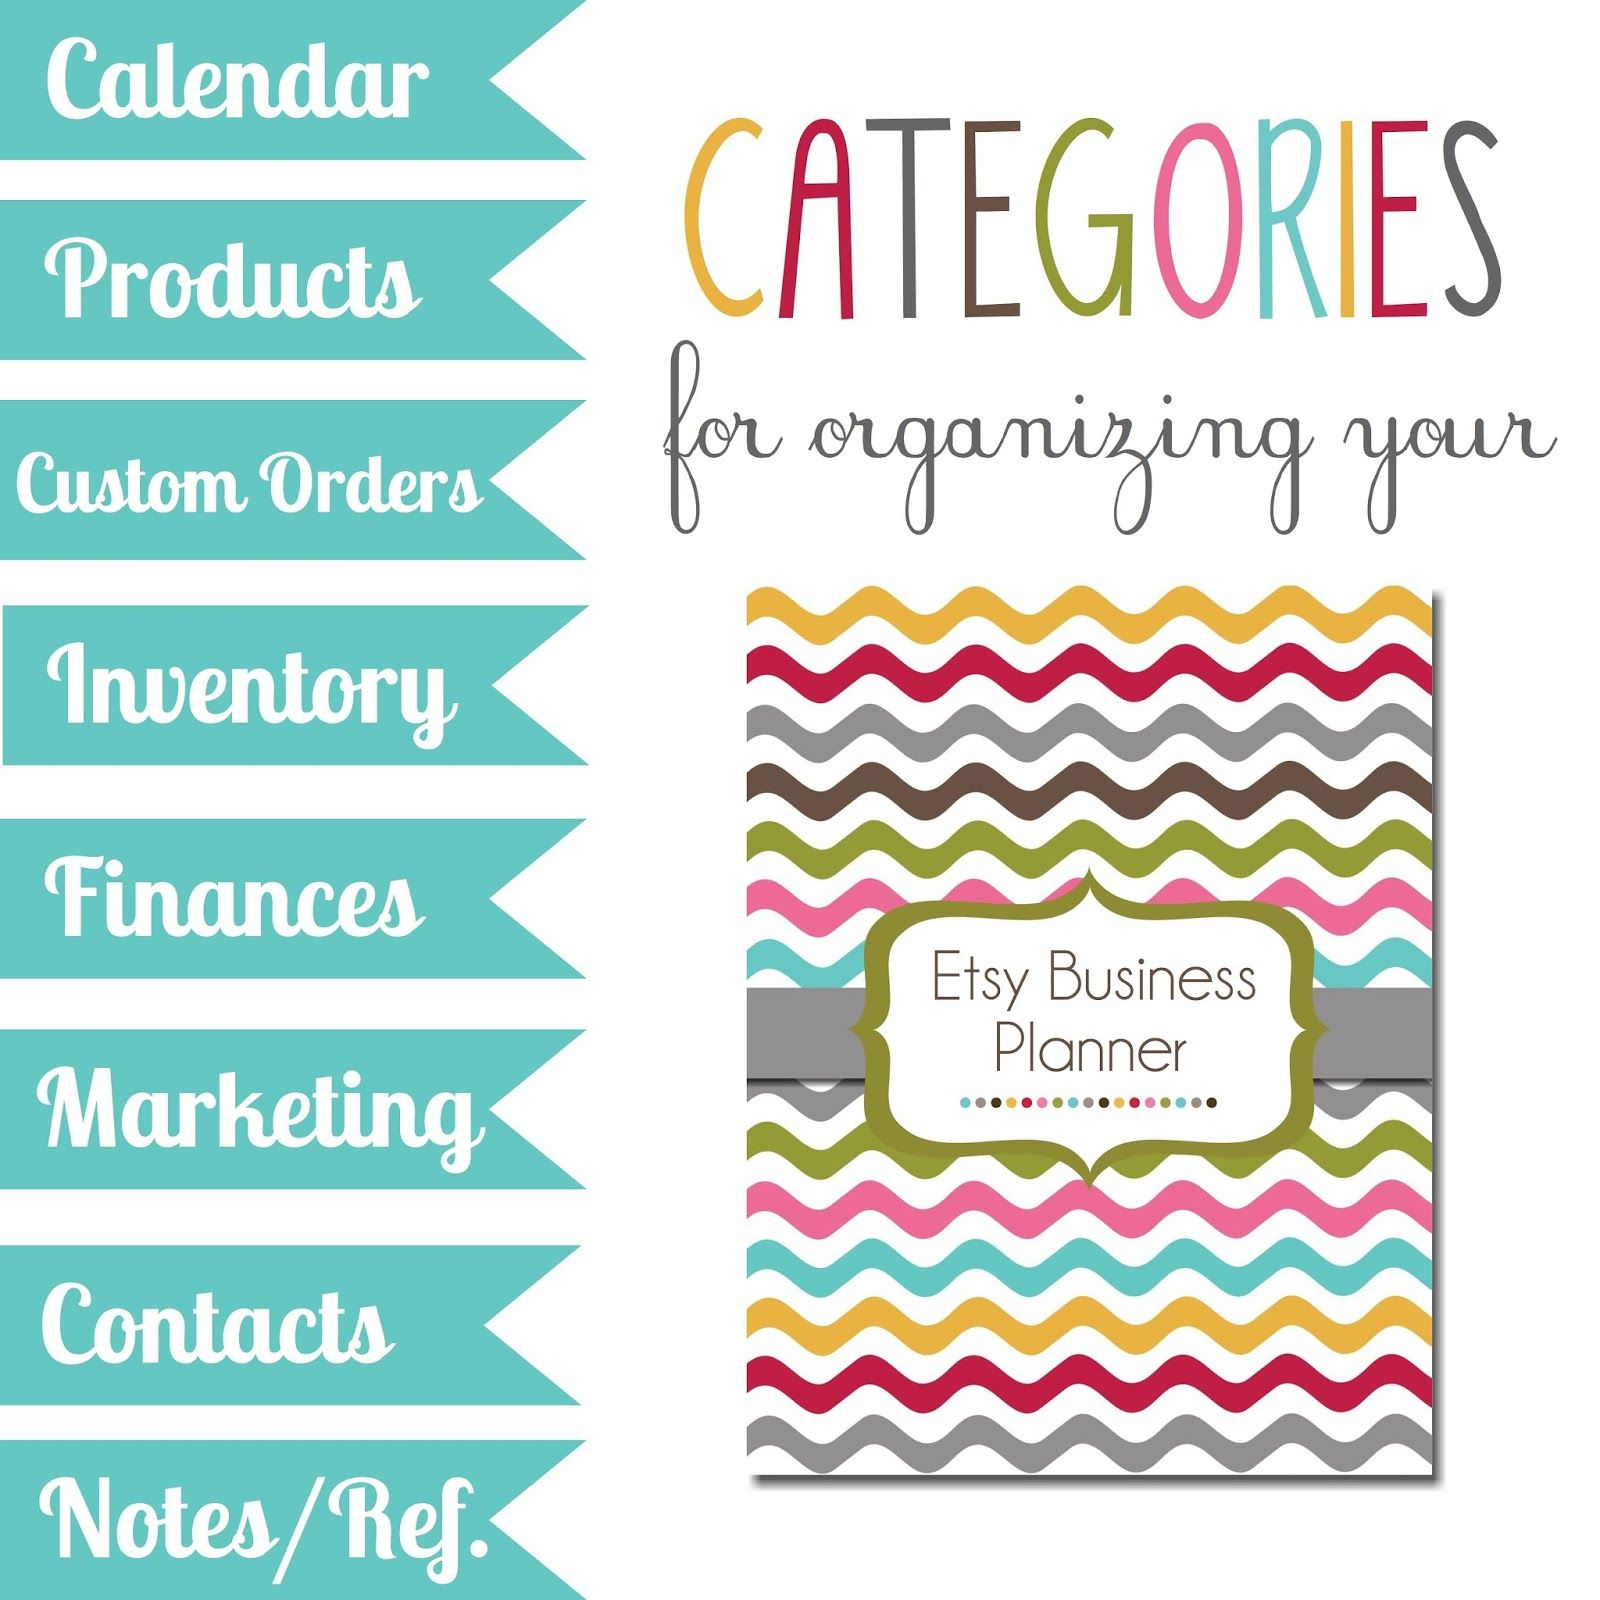 Introducing Our Etsy Small Business Planners Direct Sales